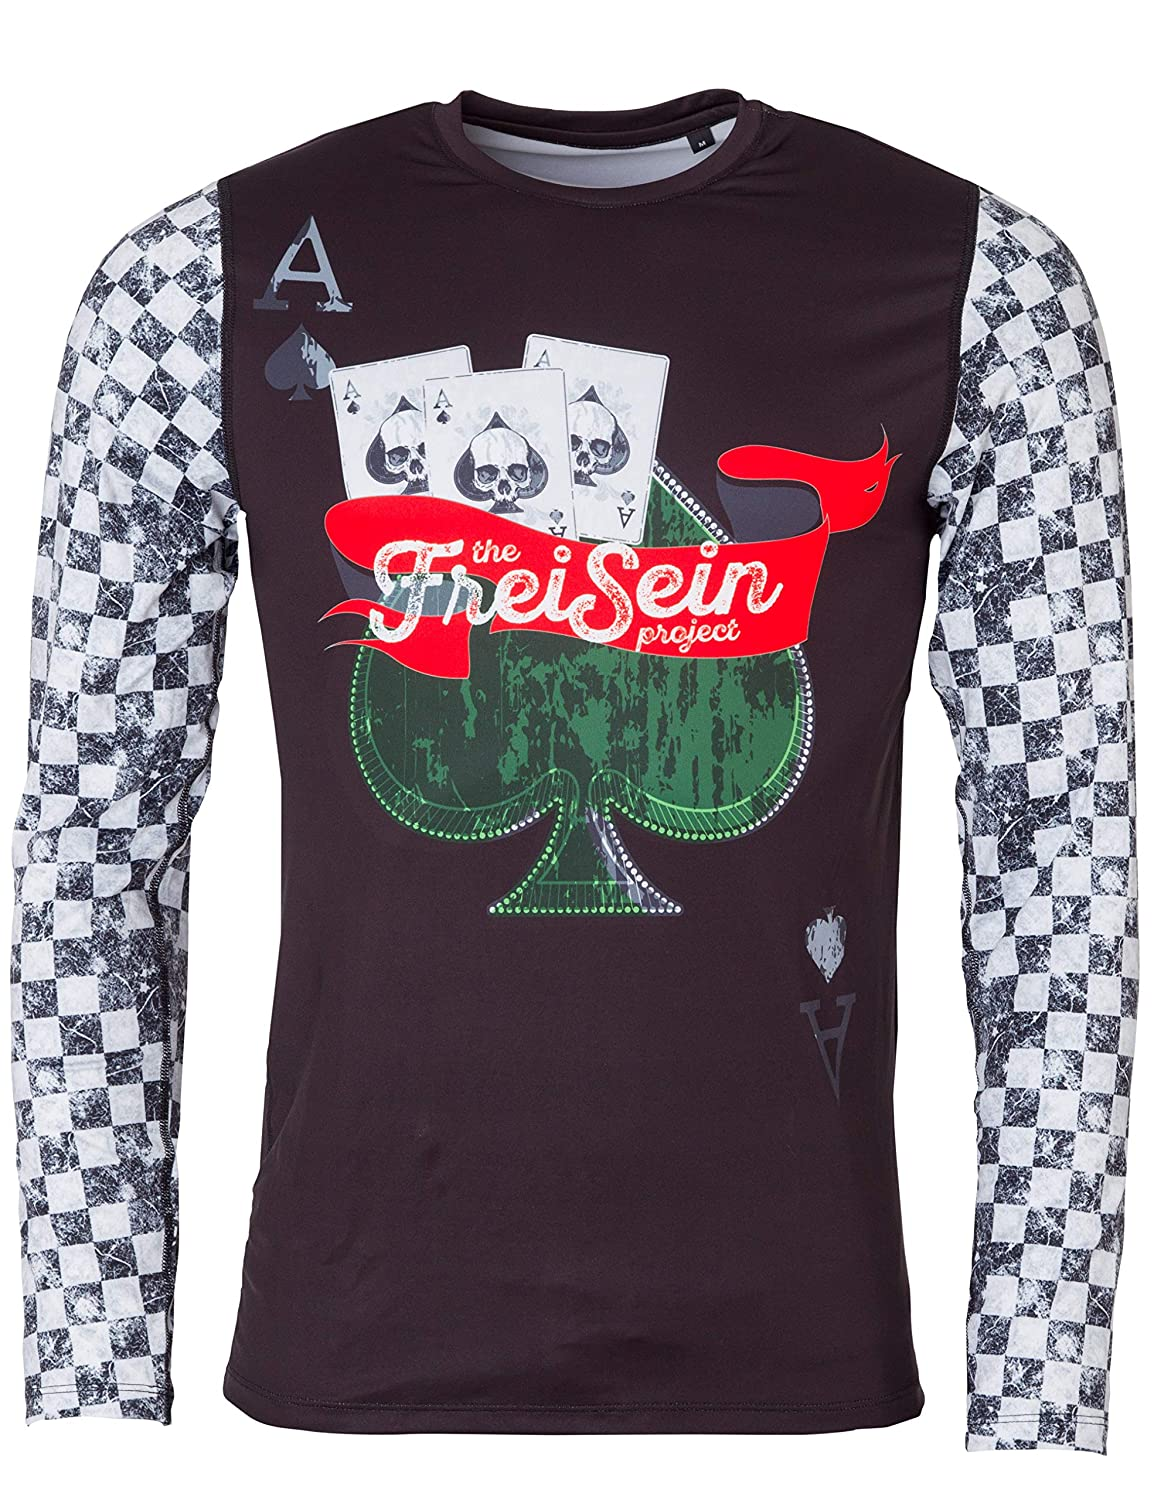 FreiSein Langarm Base-Layer Funktions-Shirt Ace of Spades (Herren) mit Karoarmen und coolem Frontprint